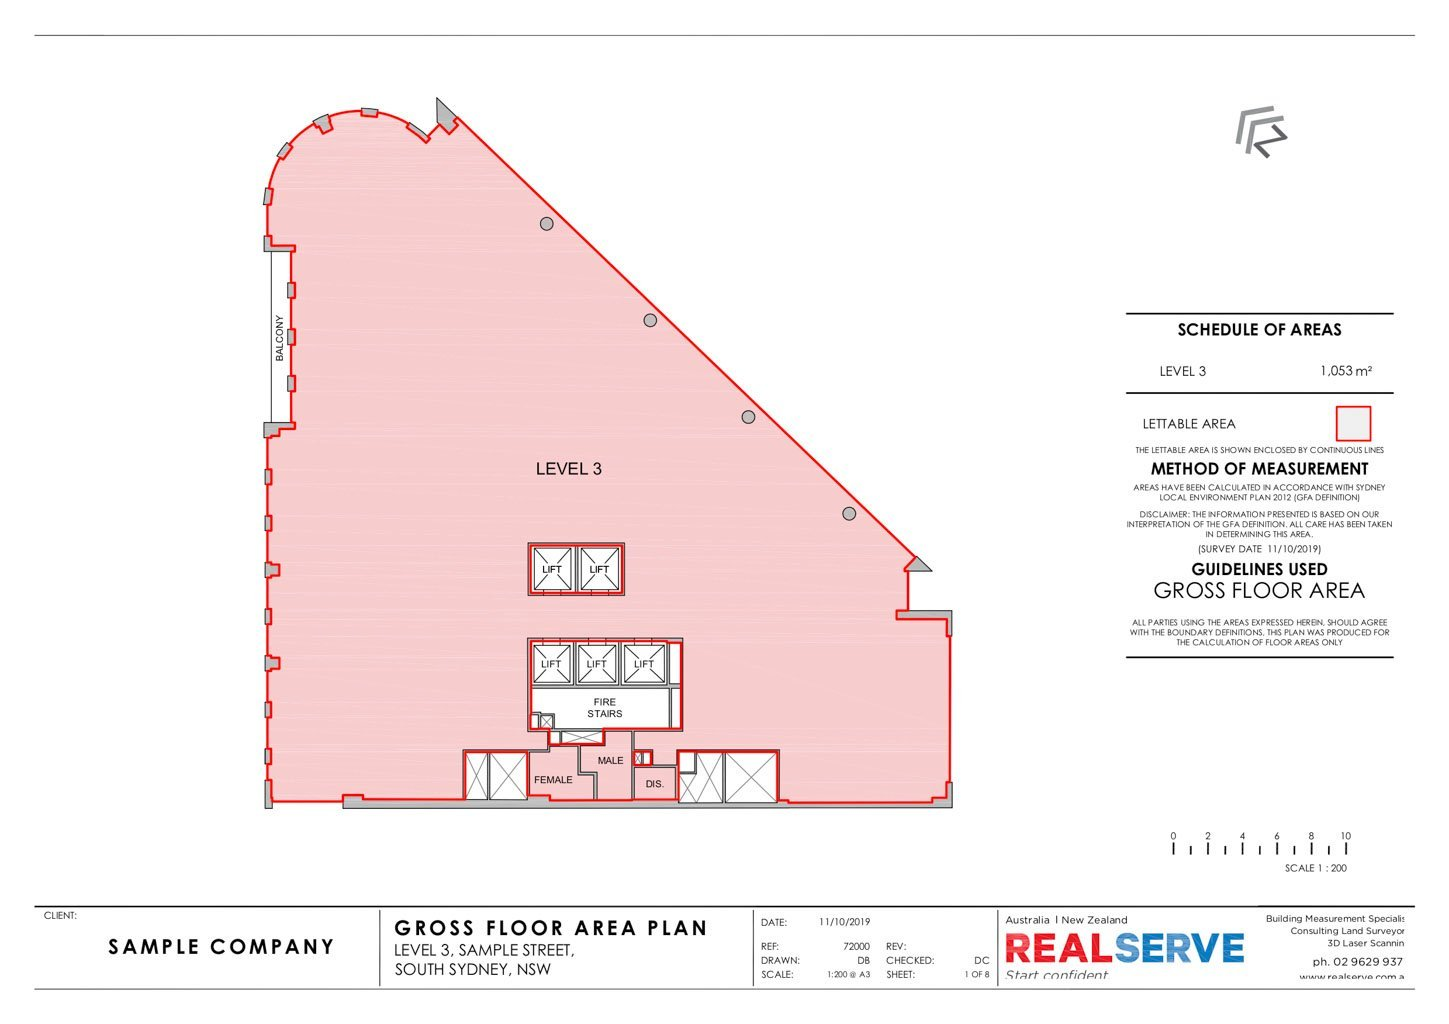 REALSERVE GROSS FLOOR AREA SURVEY SAMPLE OF A COMMERCIAL PROPERTY